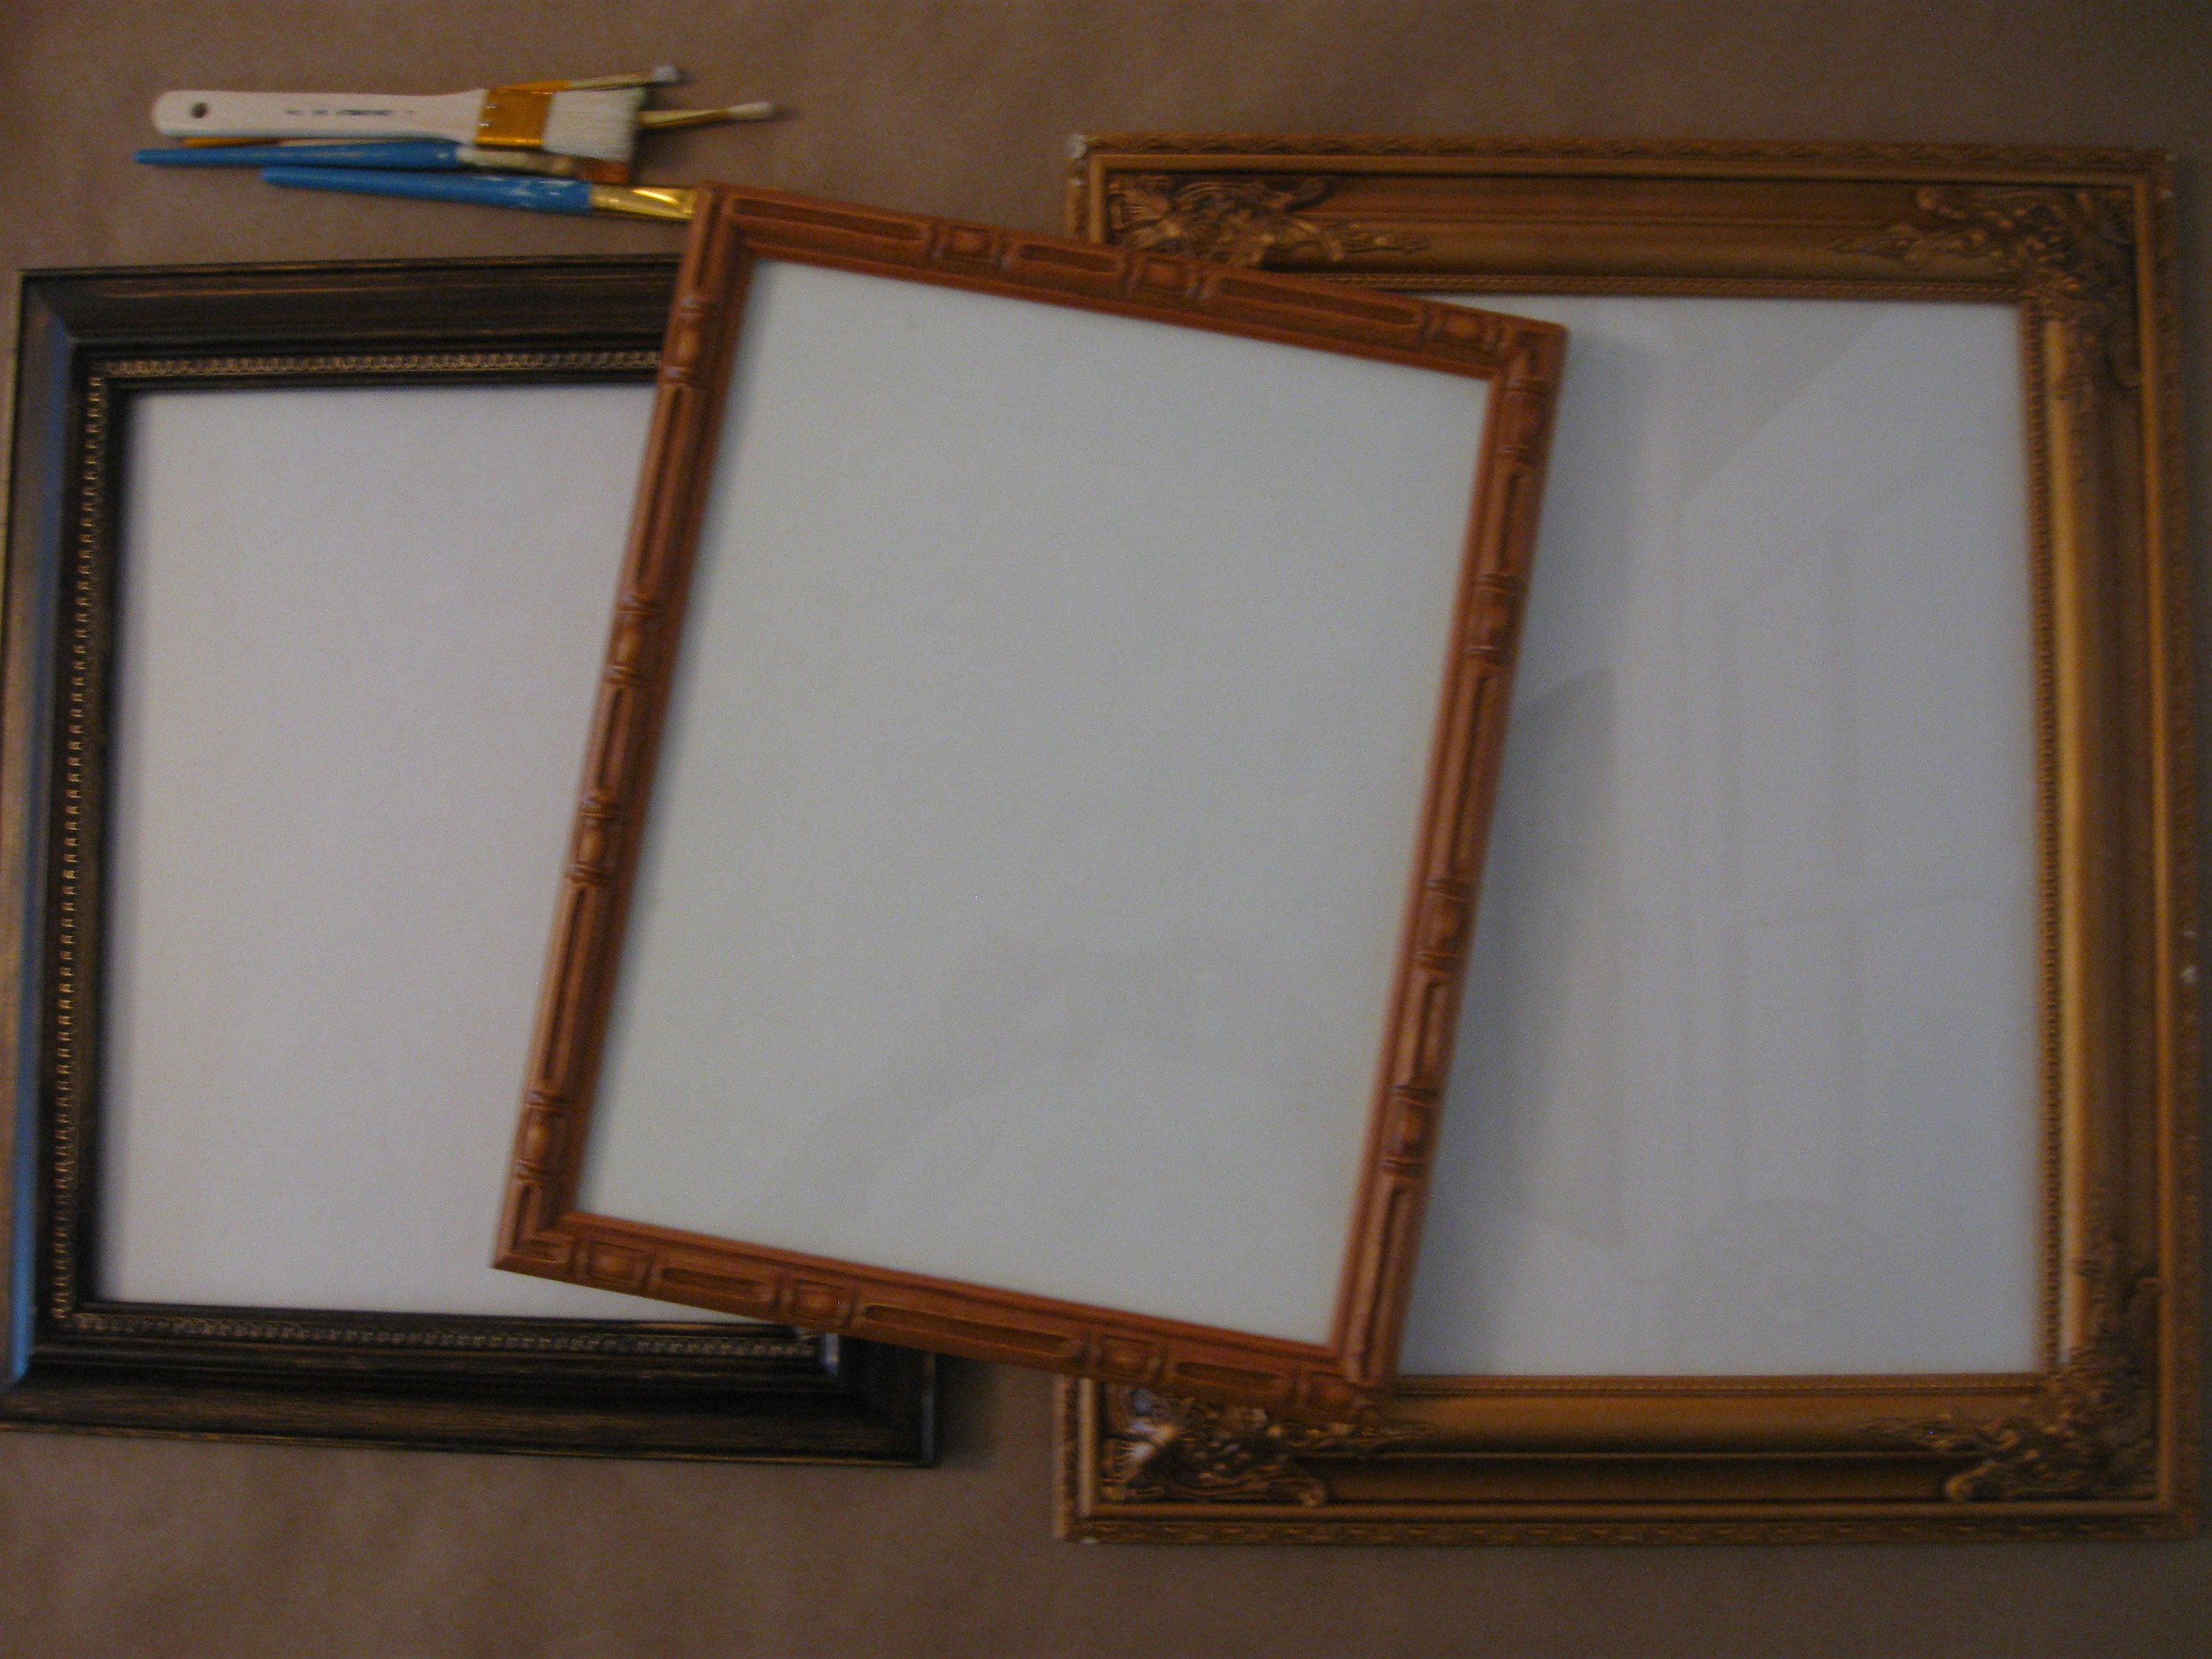 BEFORE shots of janky frames